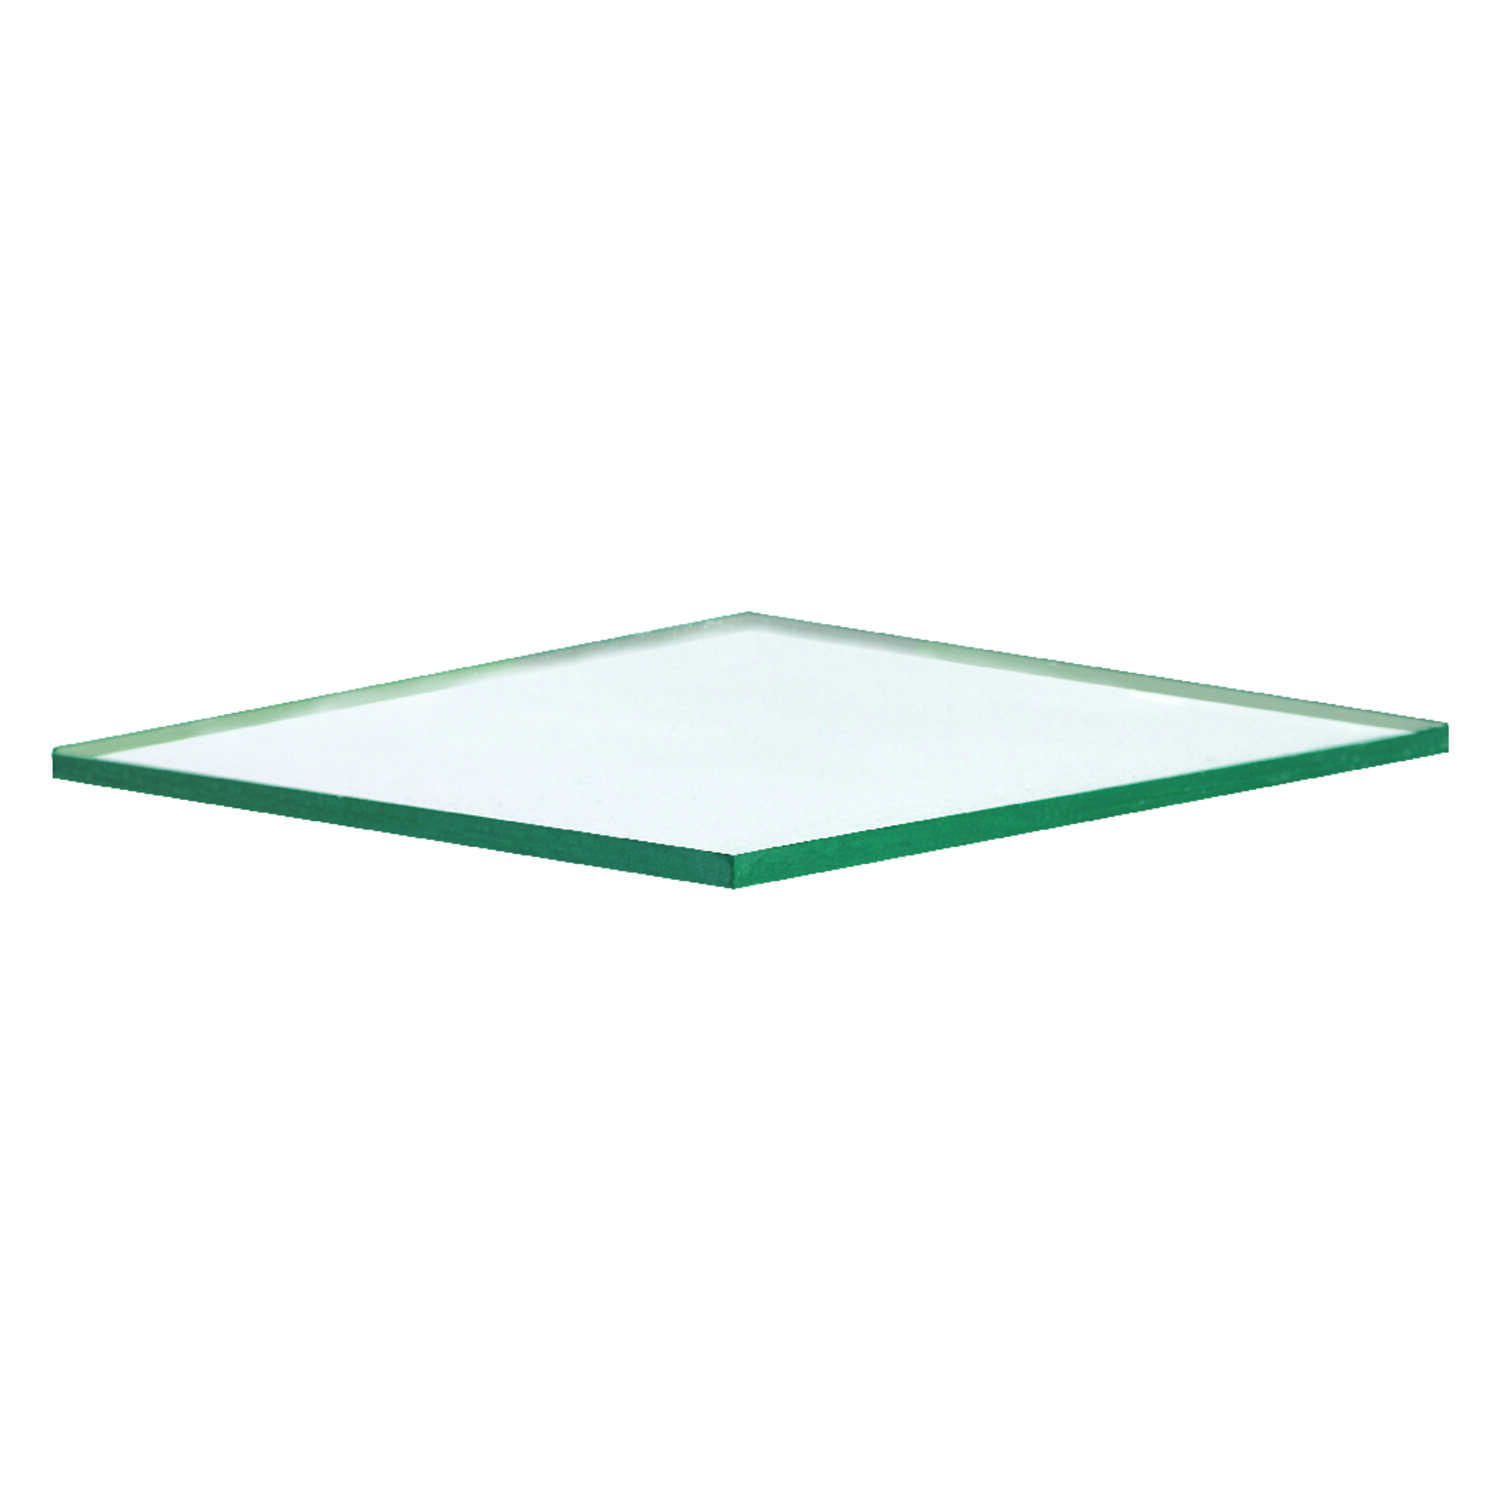 Aetna Glass  Clear  Single  Float Glass  52 in. W x 18 in. L x 2.5 mm